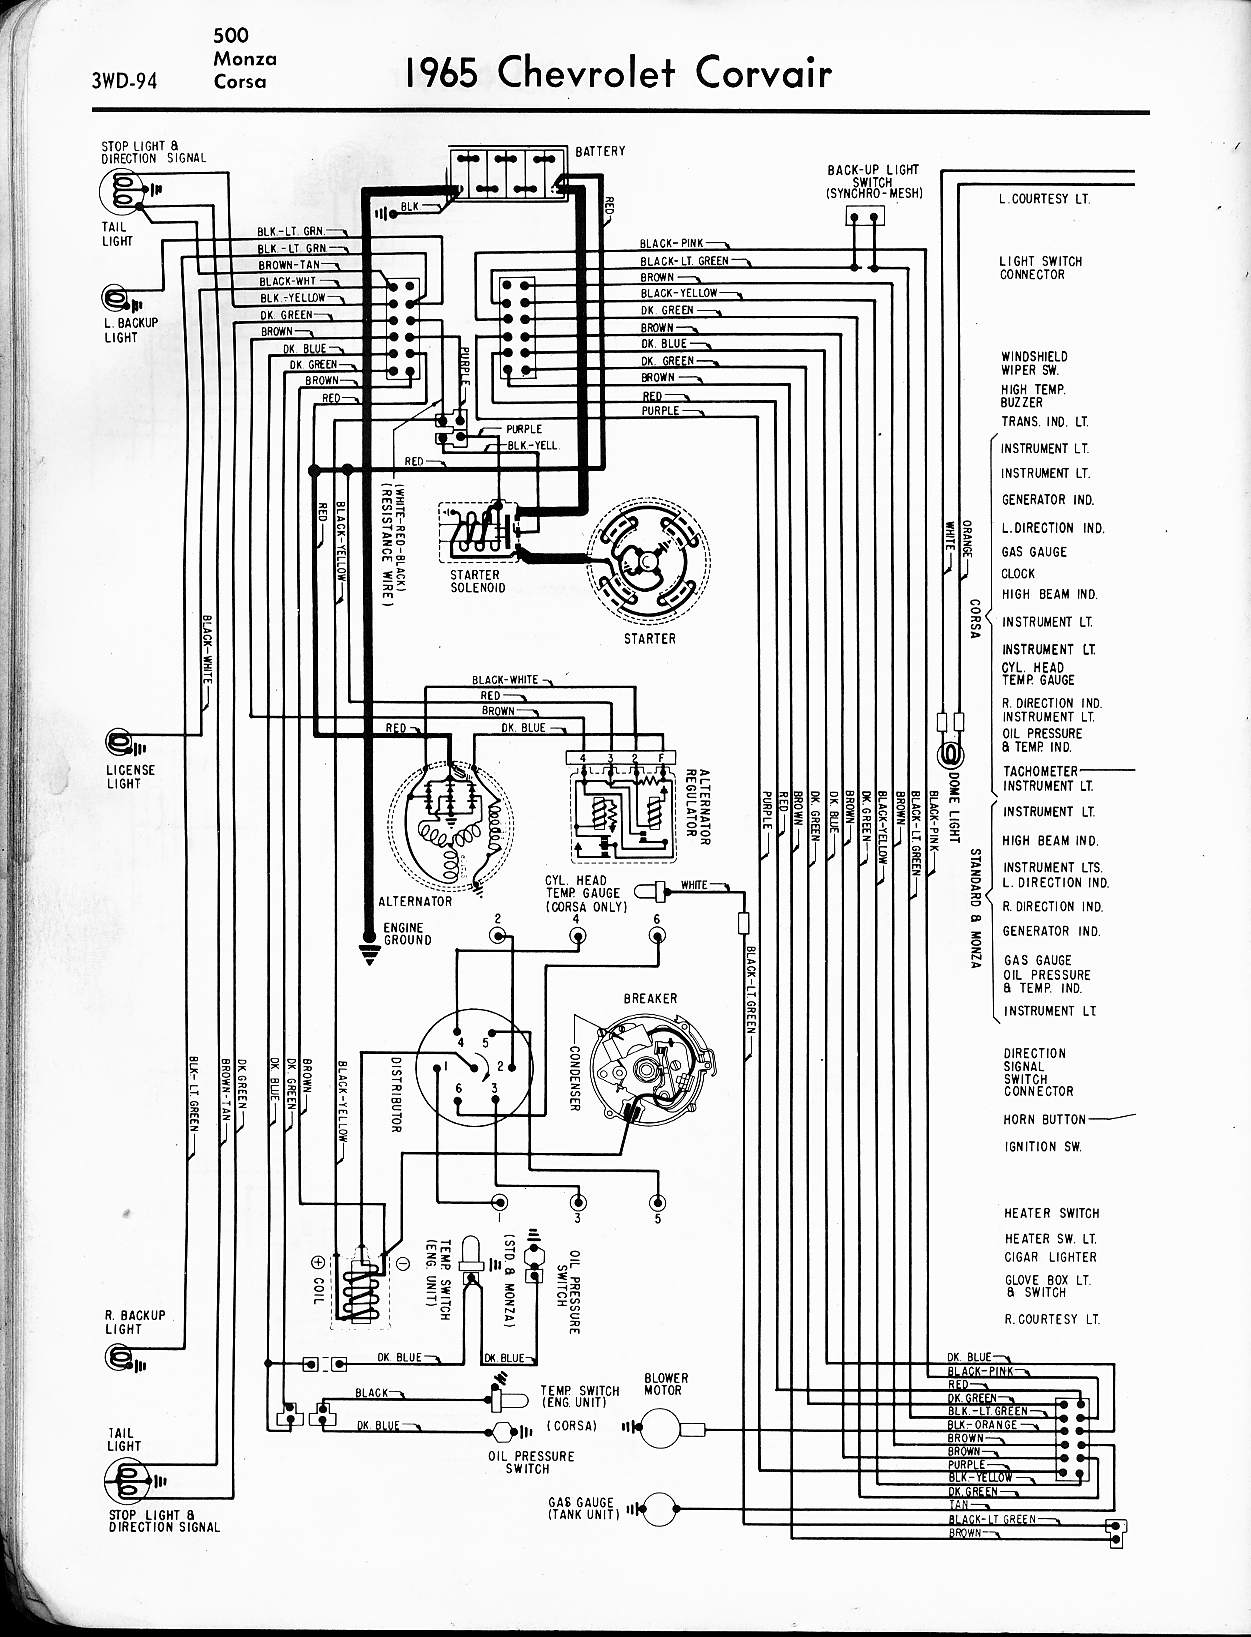 MWireChev64_3WD 094?resize=665%2C870 1966 fender mustang wiring diagram wiring diagram 1966 fender mustang wiring diagram at alyssarenee.co